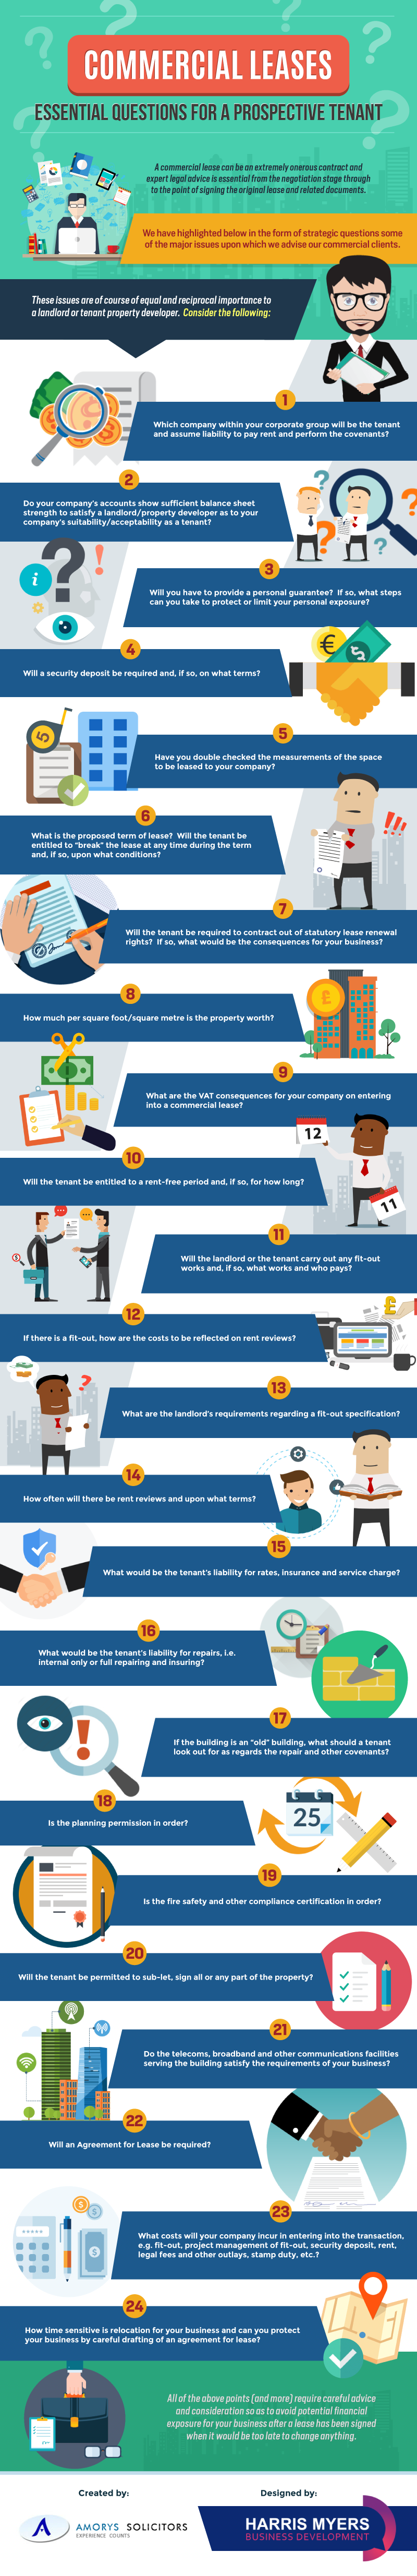 24 Questions One Should Ask While Signing A Commercial Lease  - Infographic